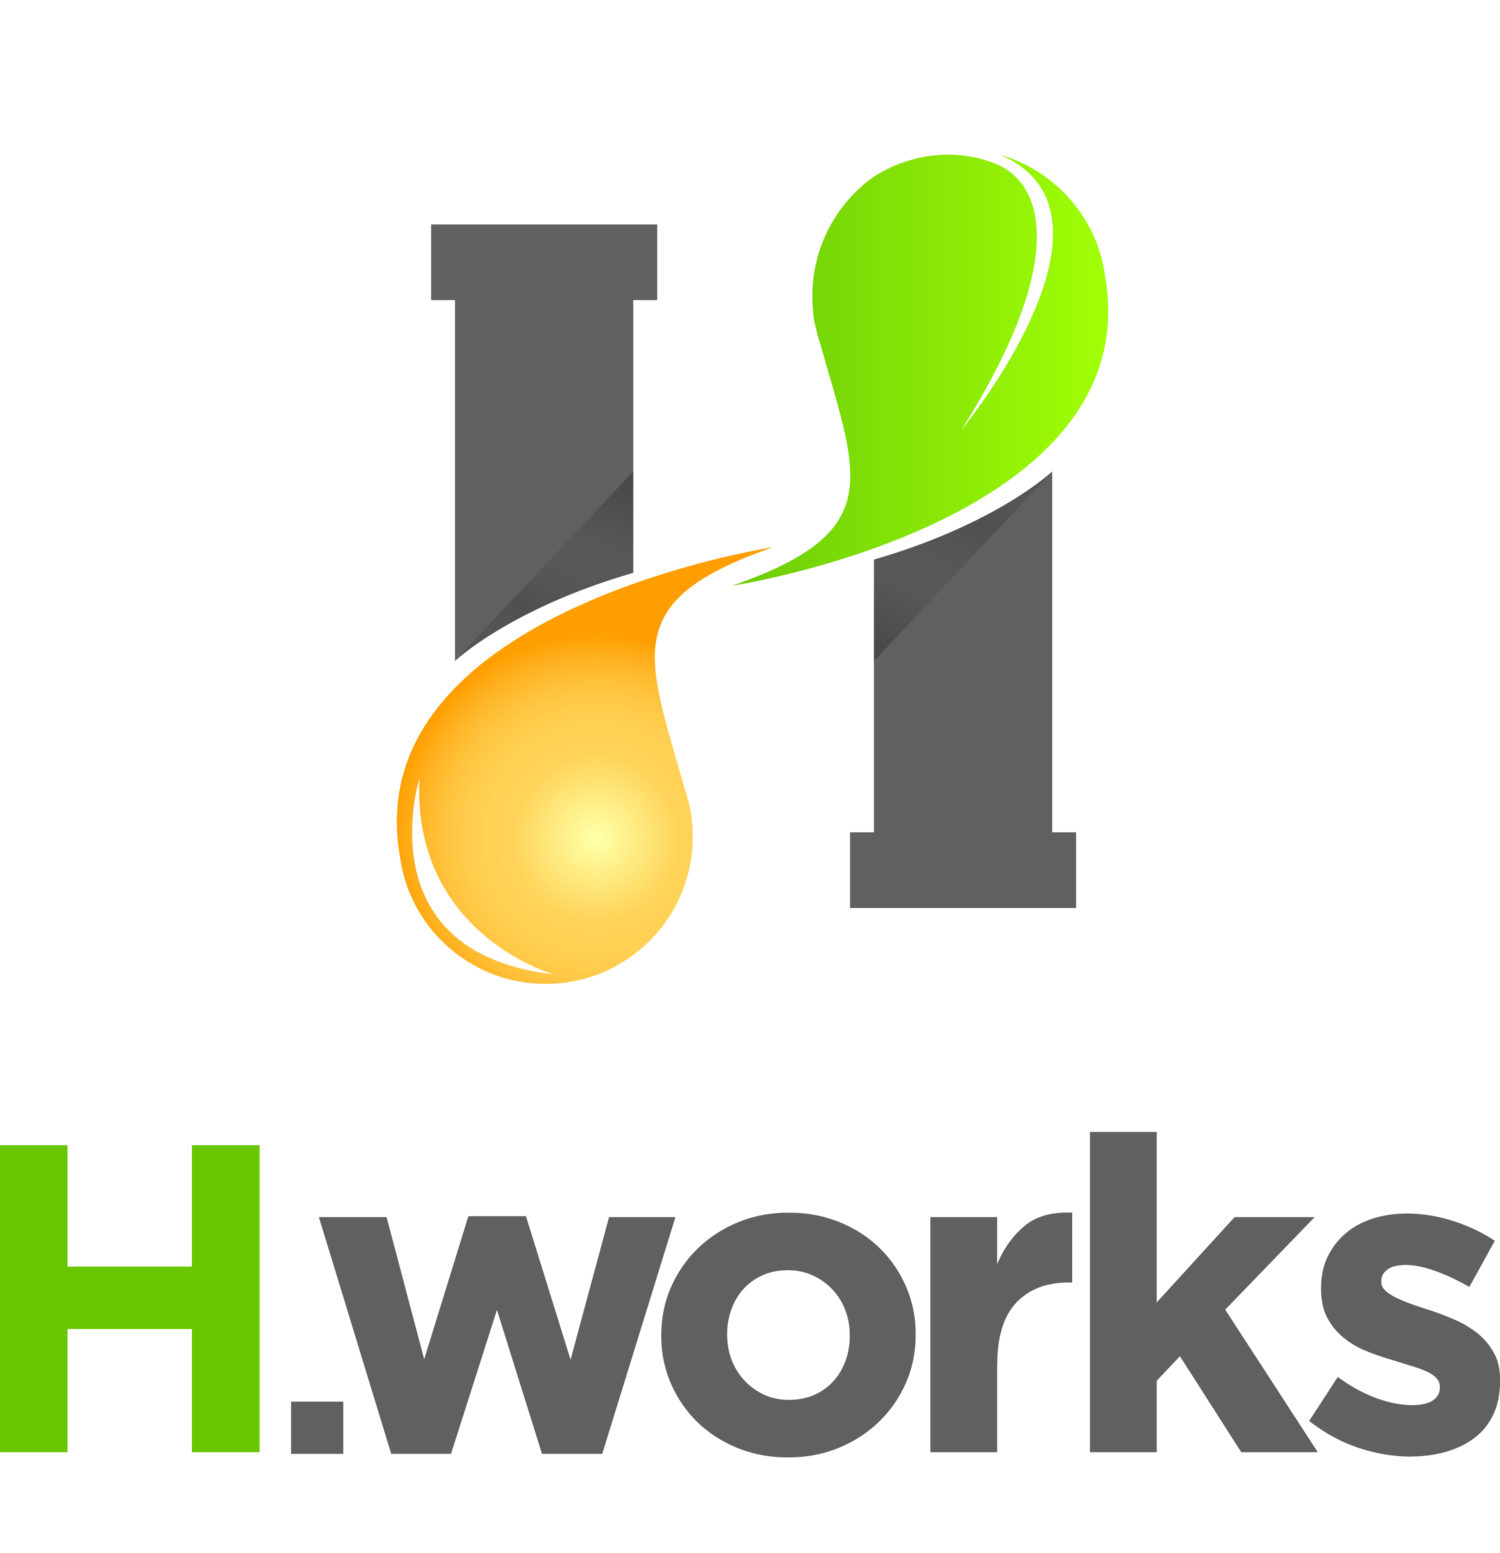 H.works